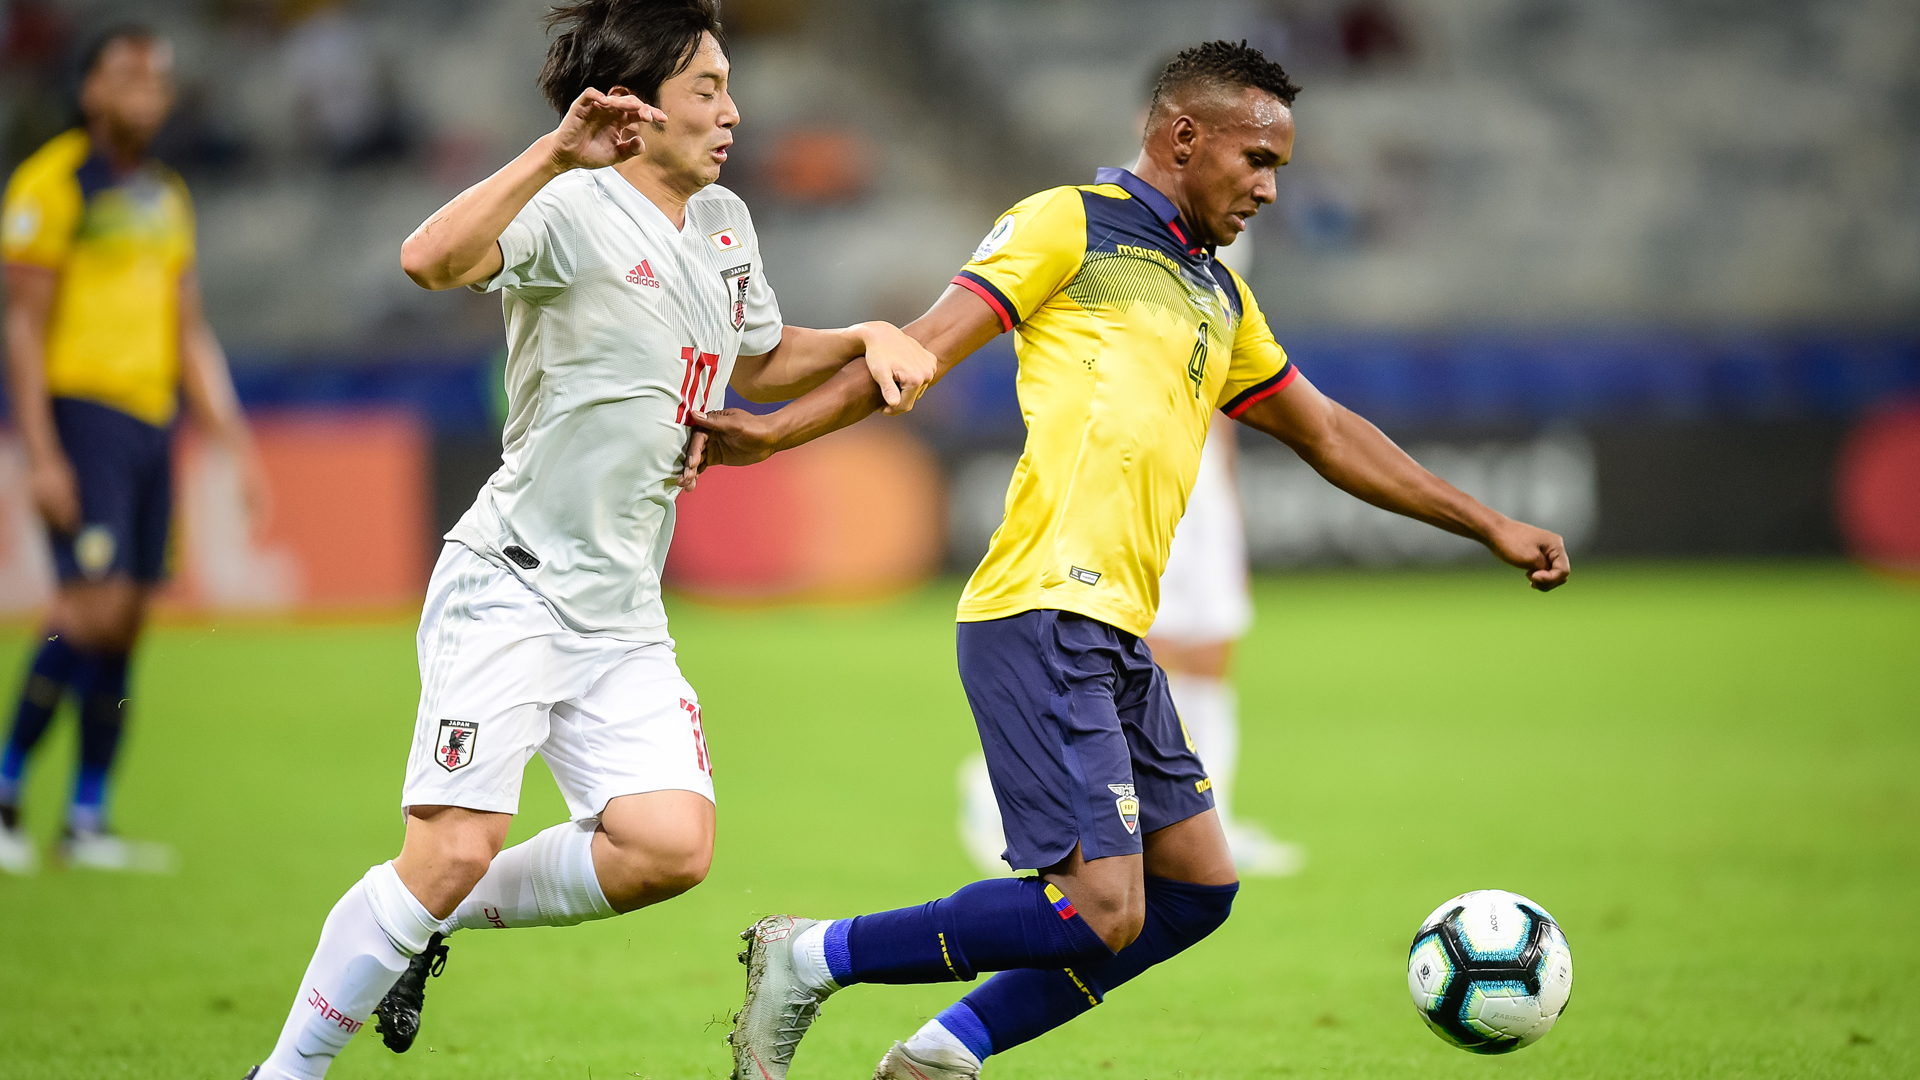 Ecuador 1 Japan 1: Draw sees both nations exit Copa America